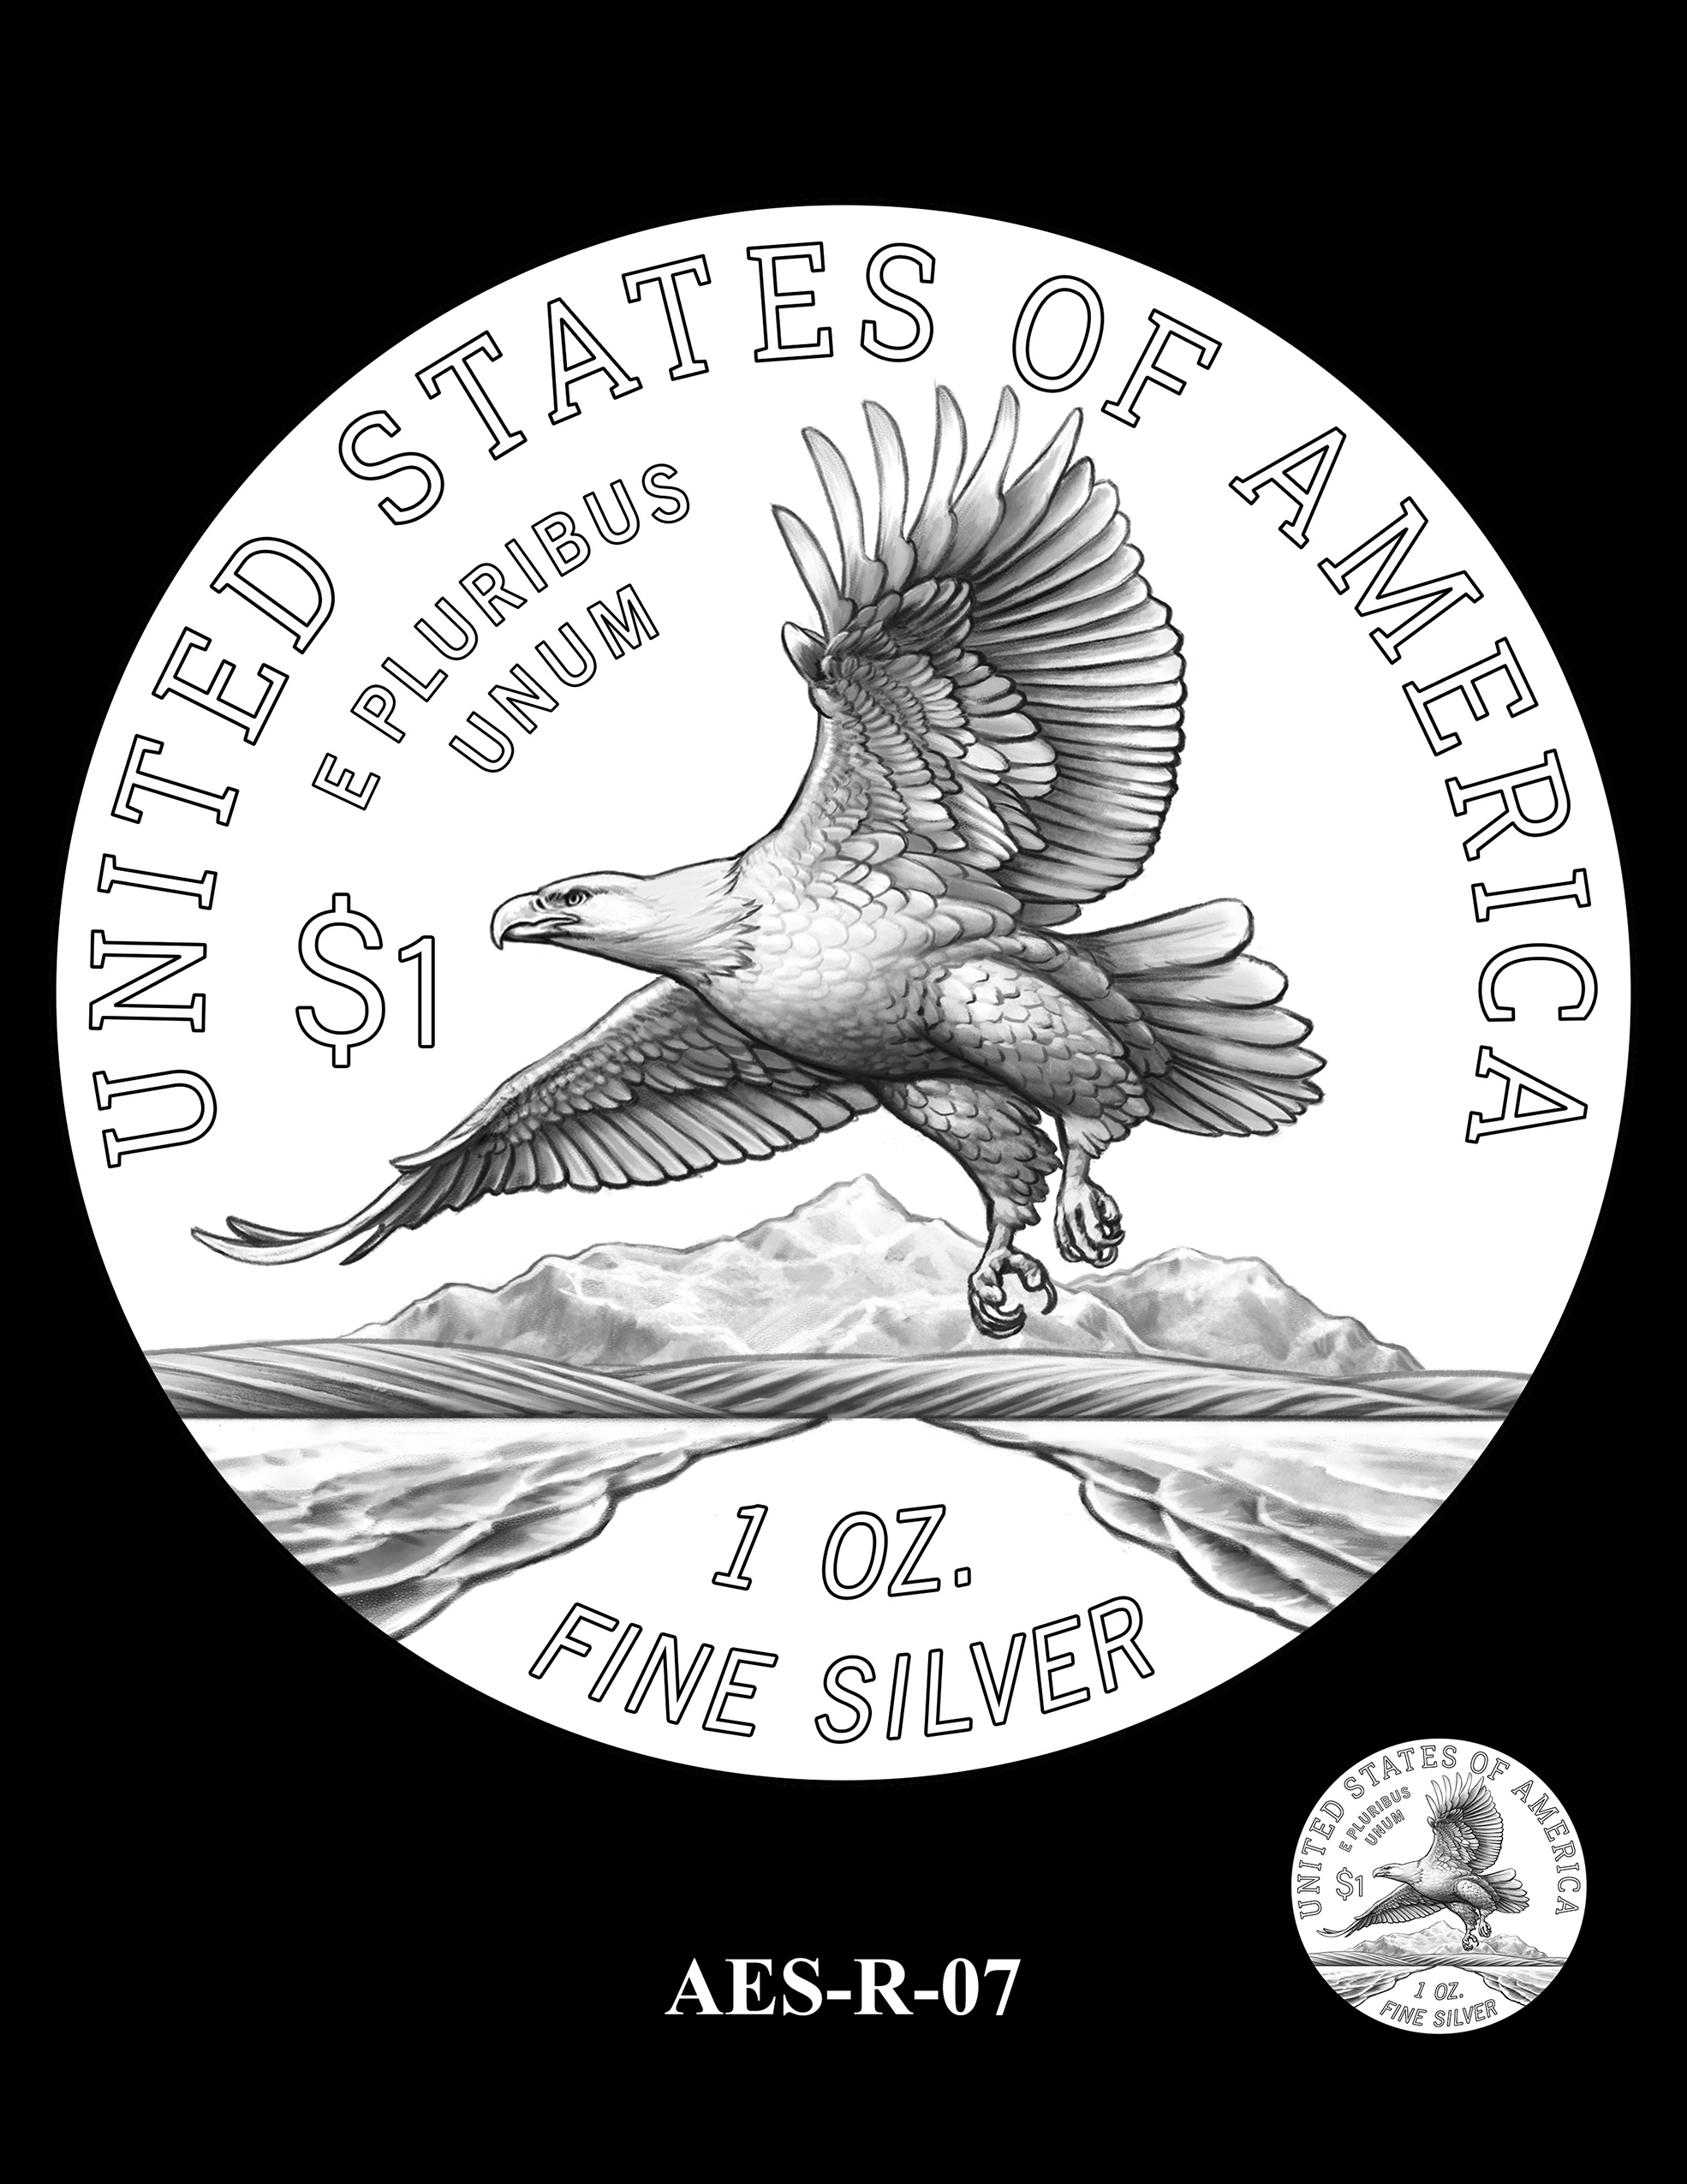 AES-R-07 -- American Eagle Proof and Bullion Silver Coin - Reverse